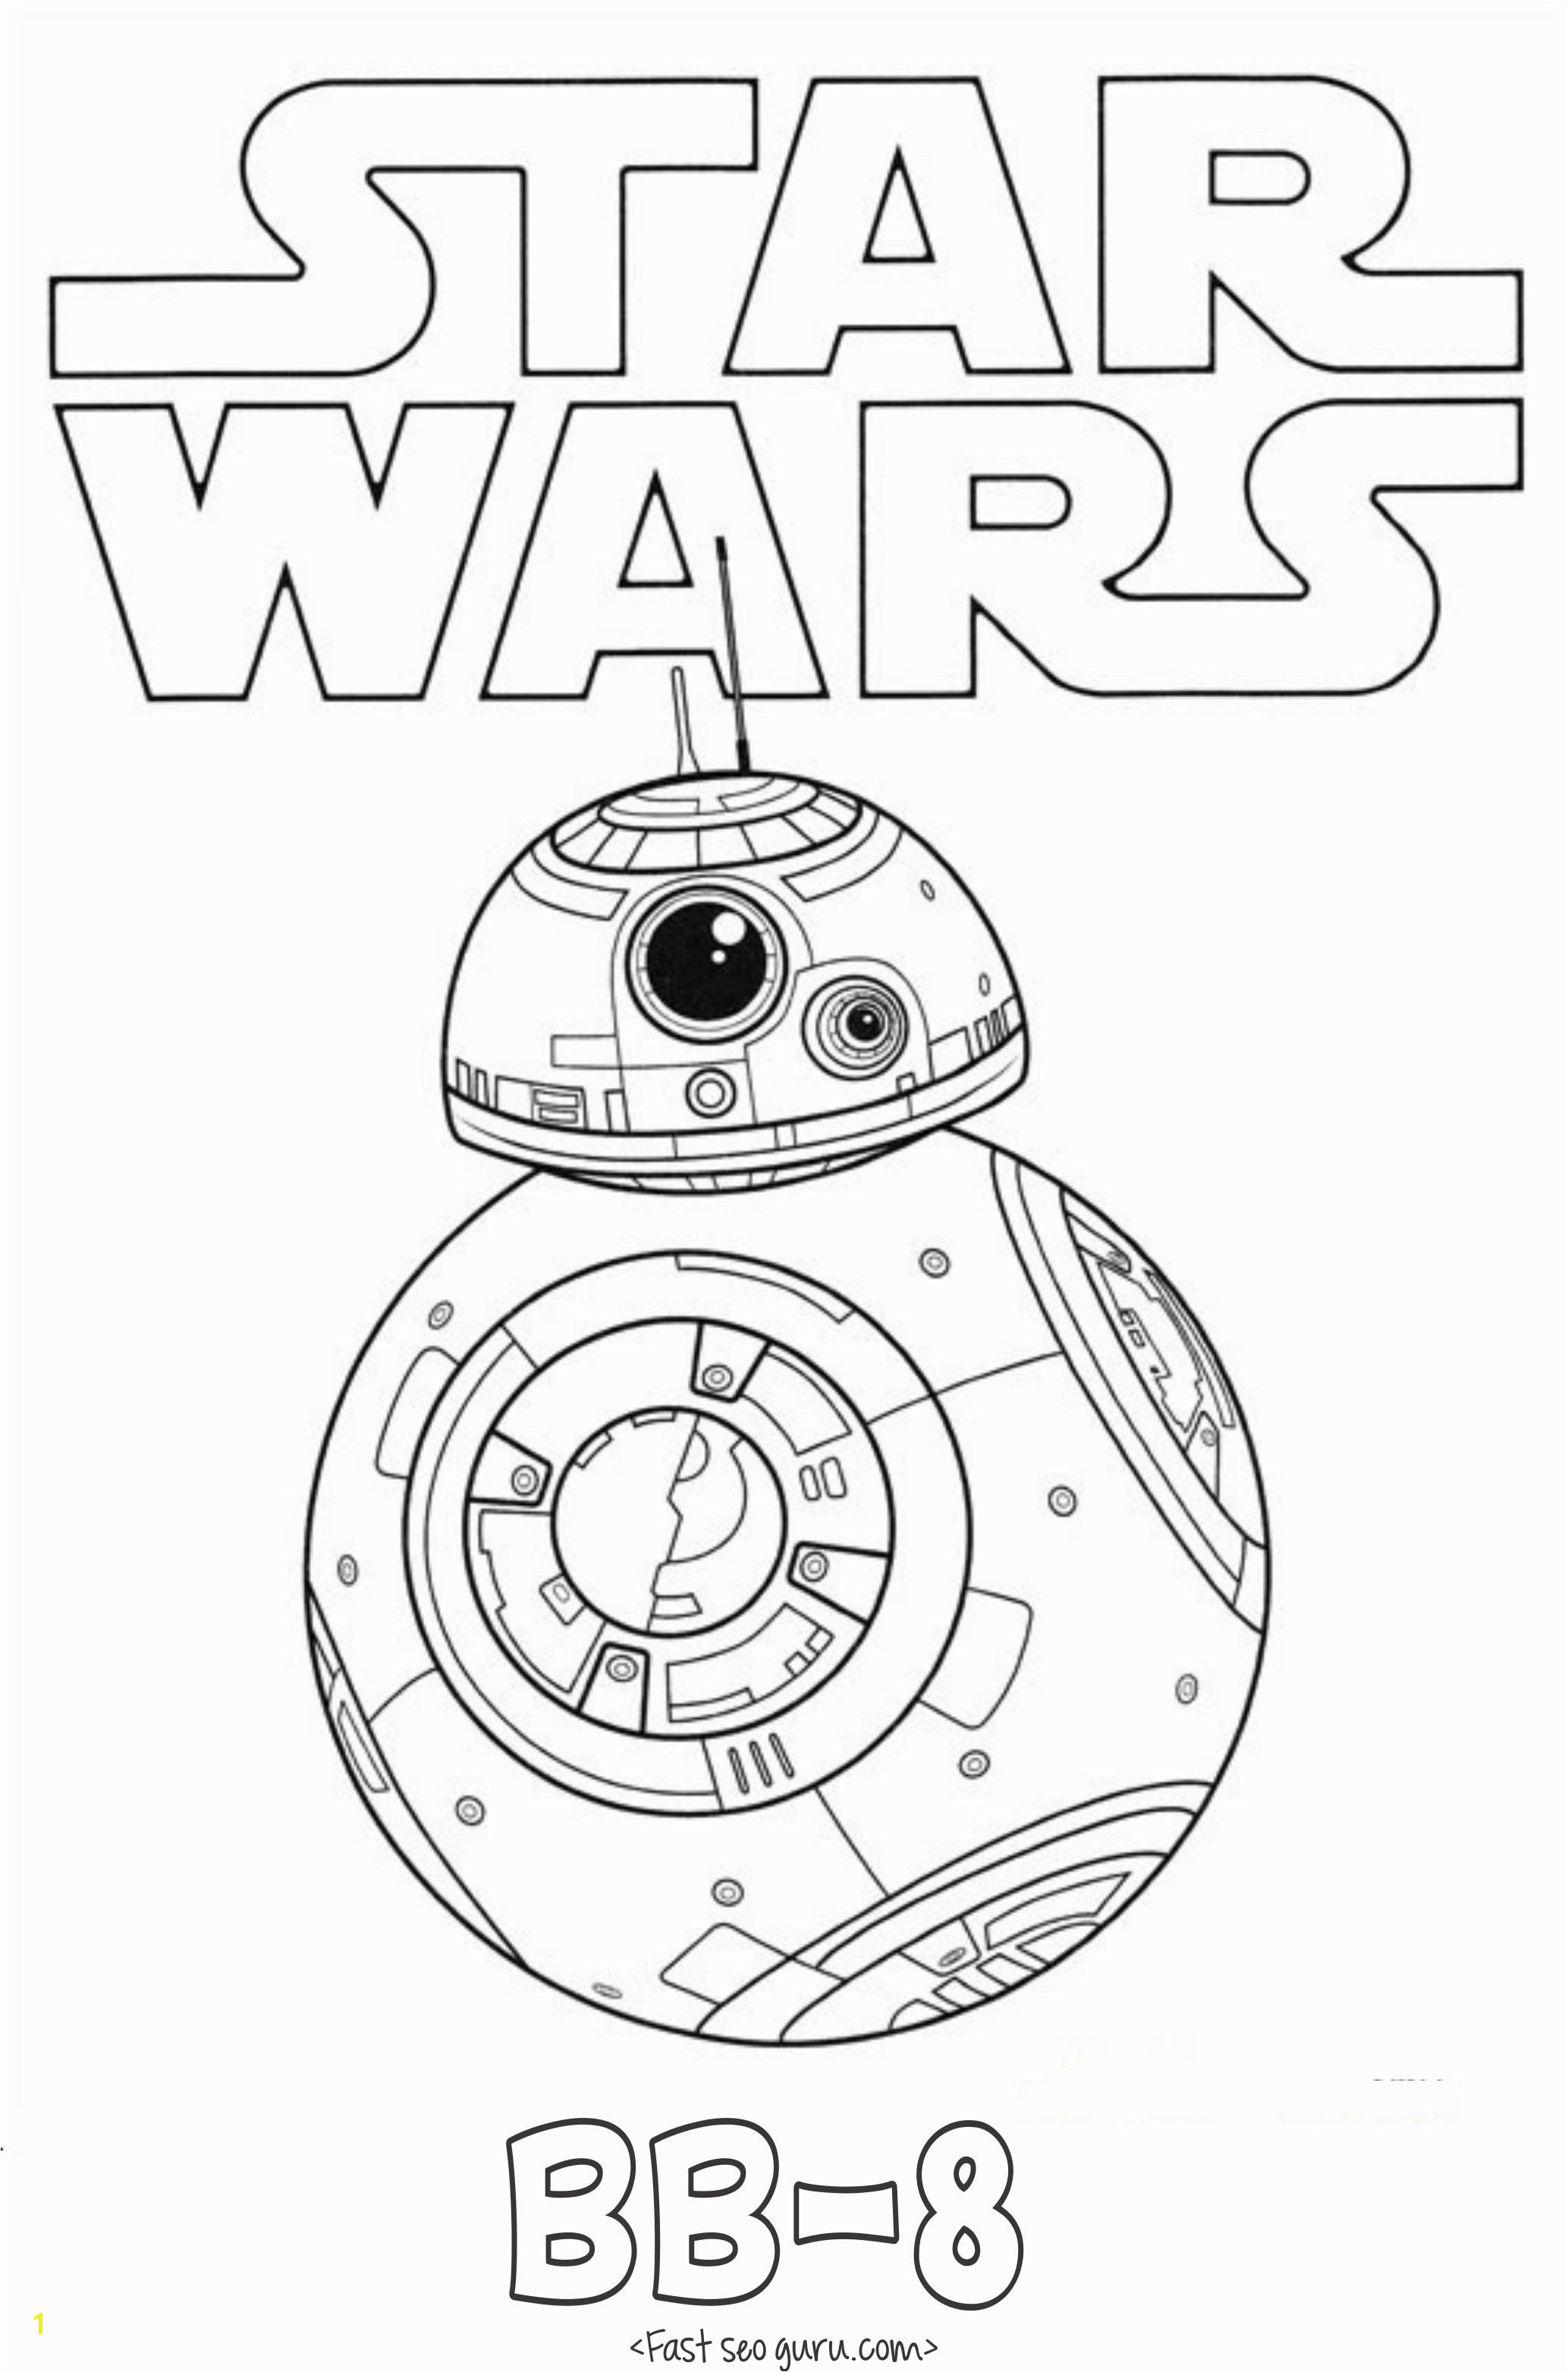 Star Wars the force Awakens Coloring Pages Printable Star Wars the force Awakens Bb 8